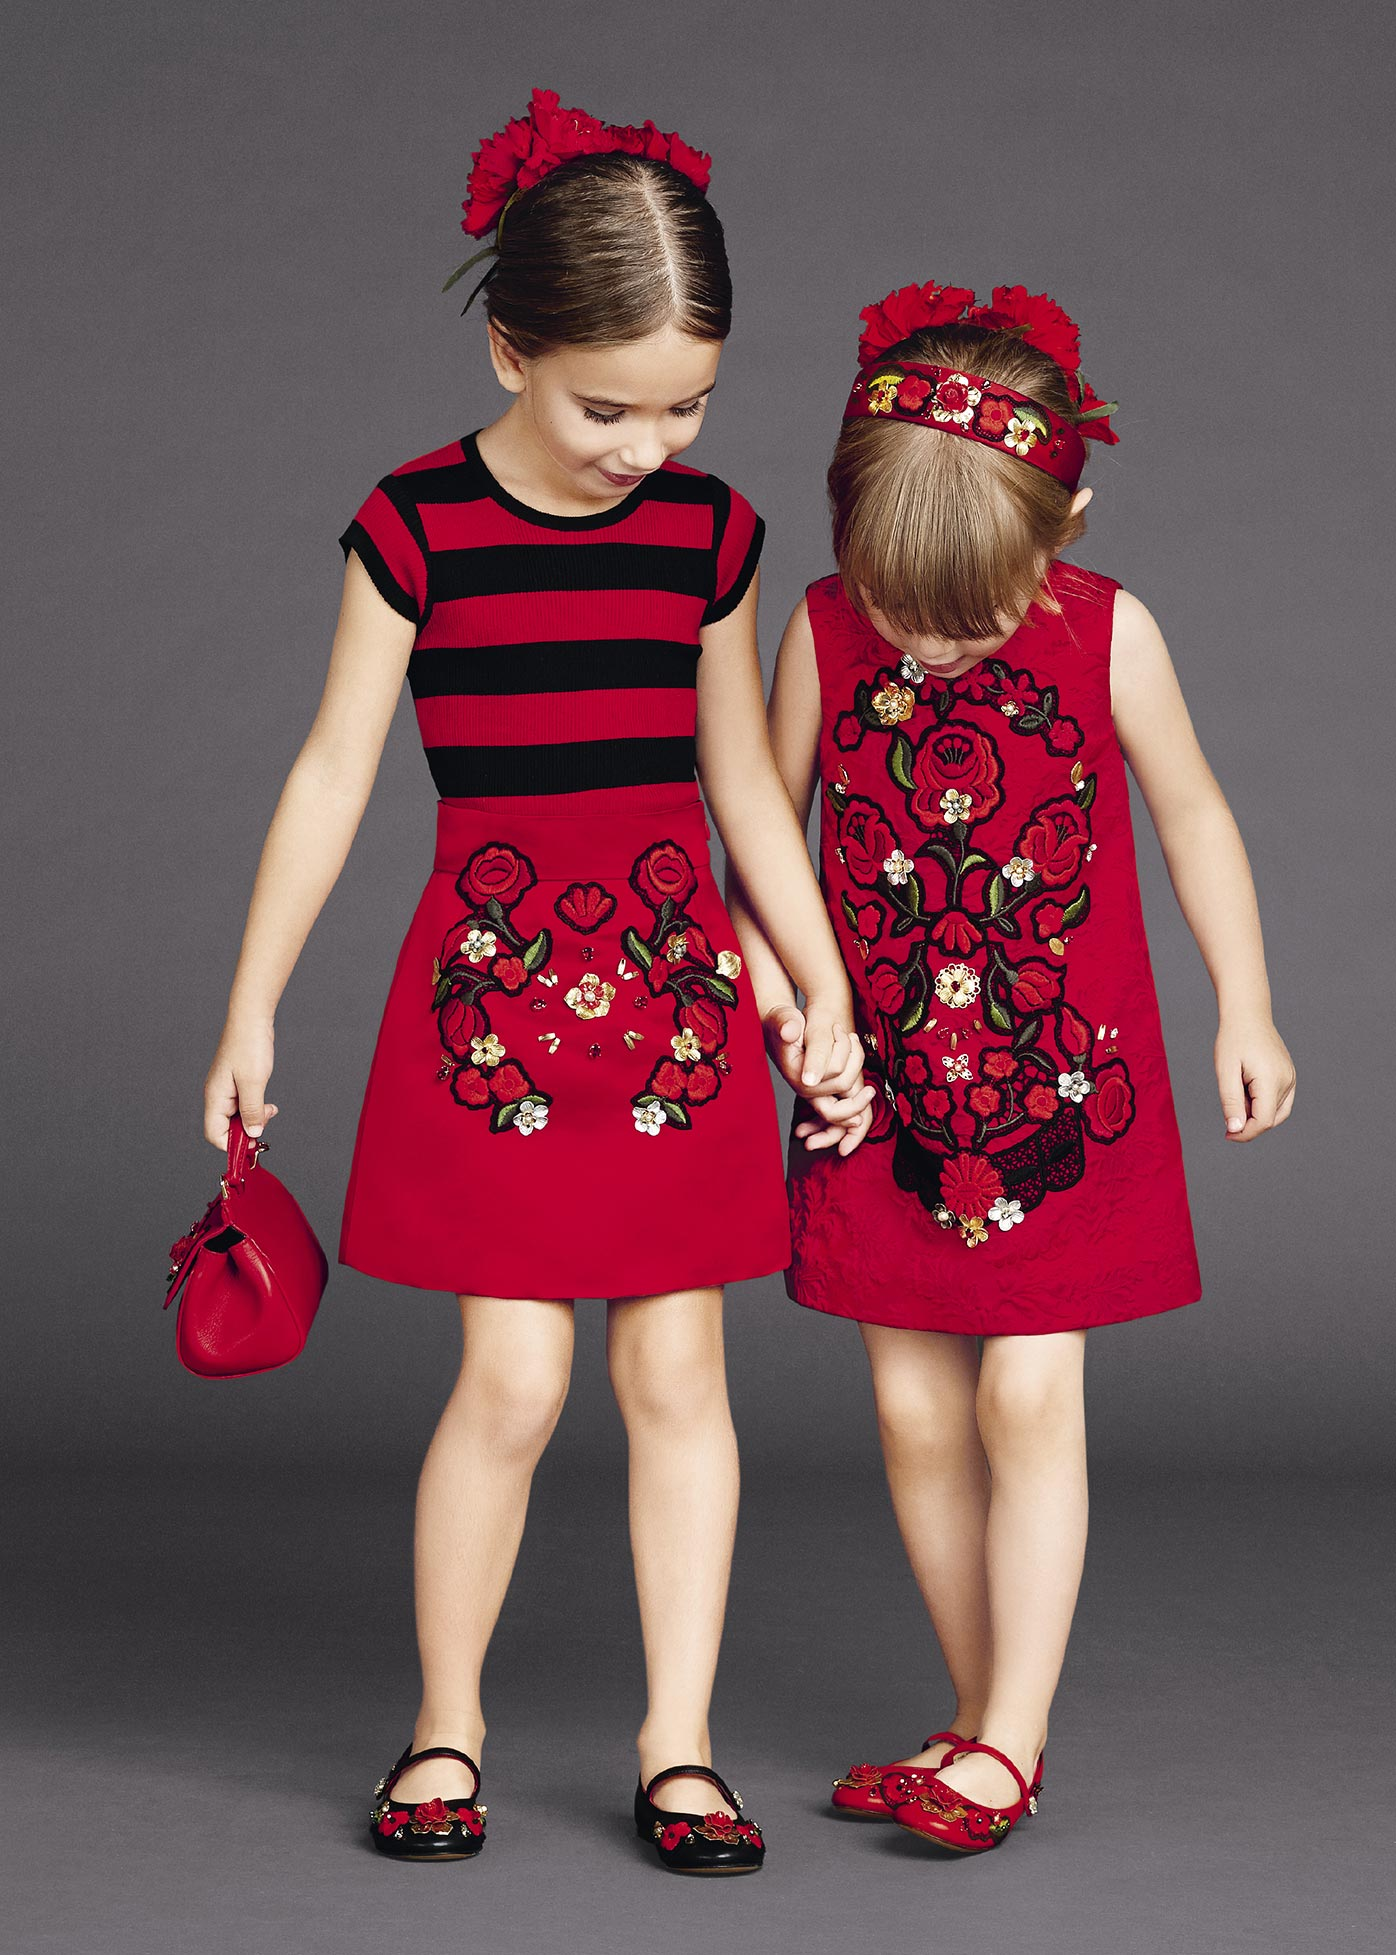 dolce-and-gabbana-summer-2015-child-collection-46-zoom.jpg